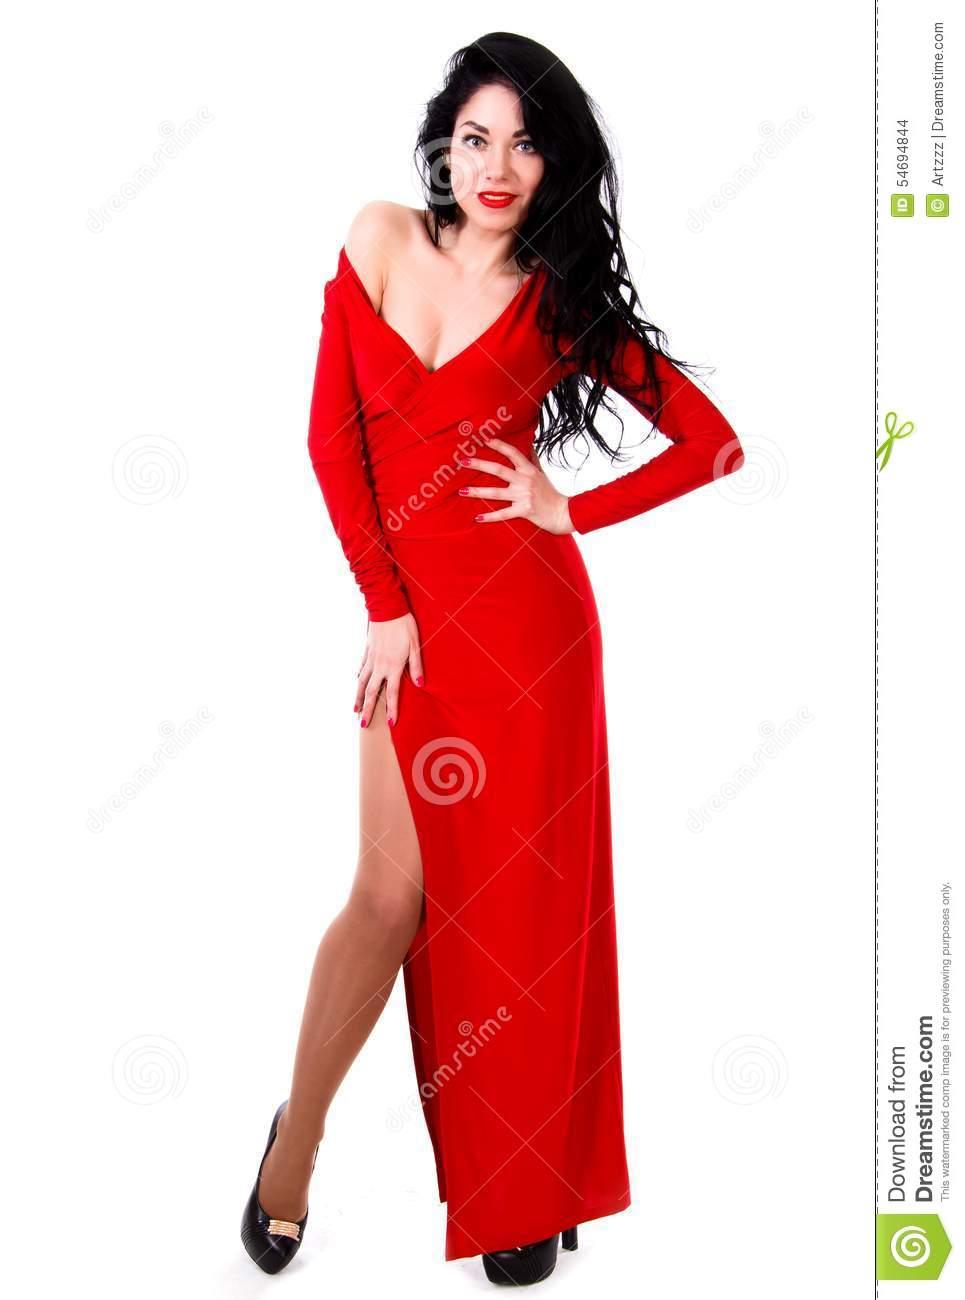 Beautiful Young Woman In A Red Evening Dress Stock Photo - Image of ...